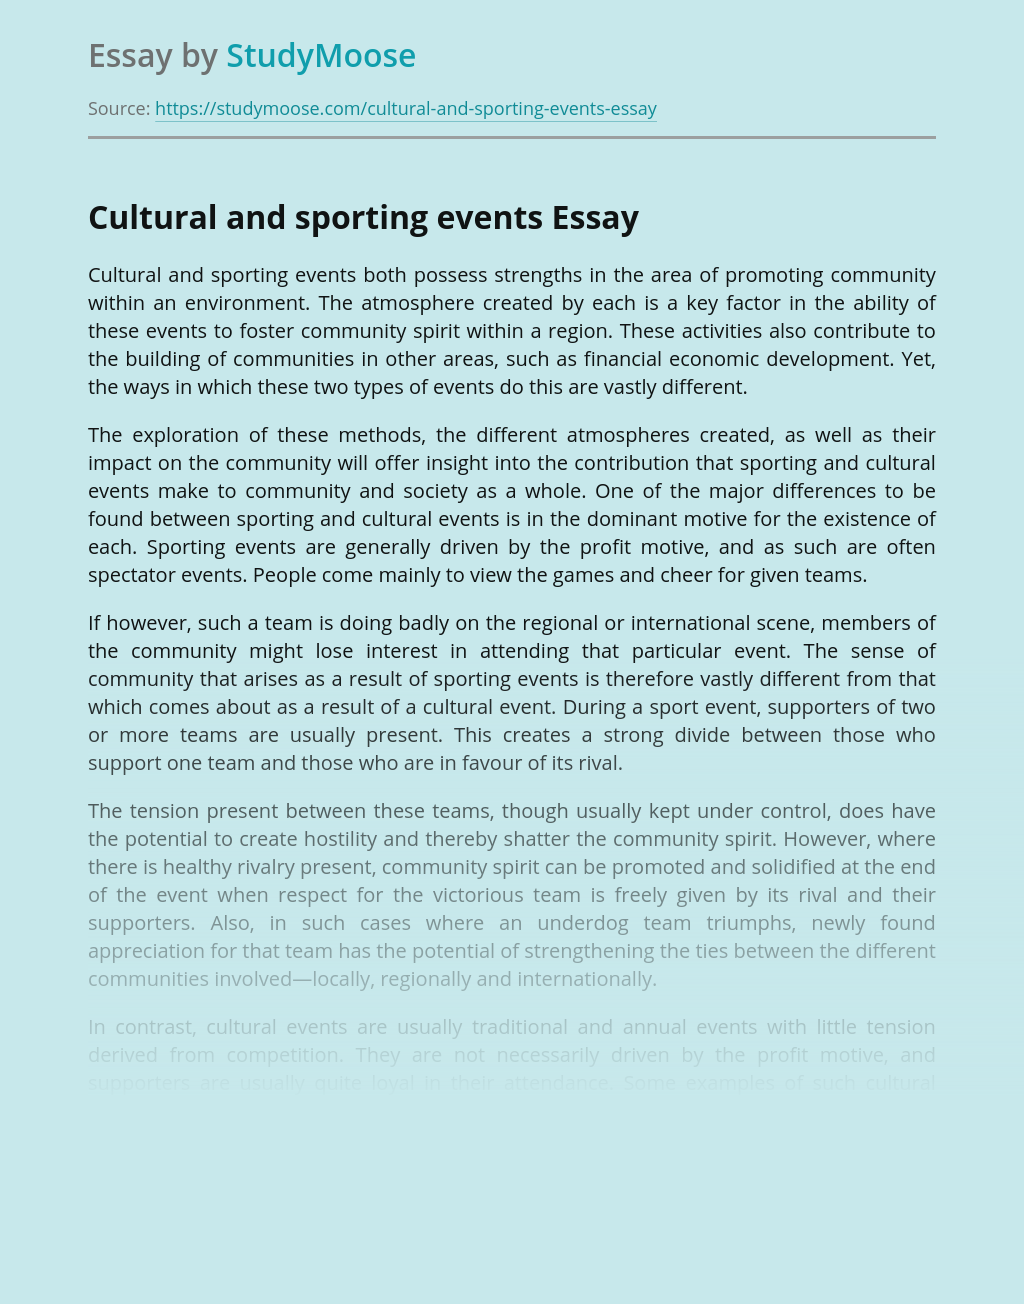 Cultural and sporting events